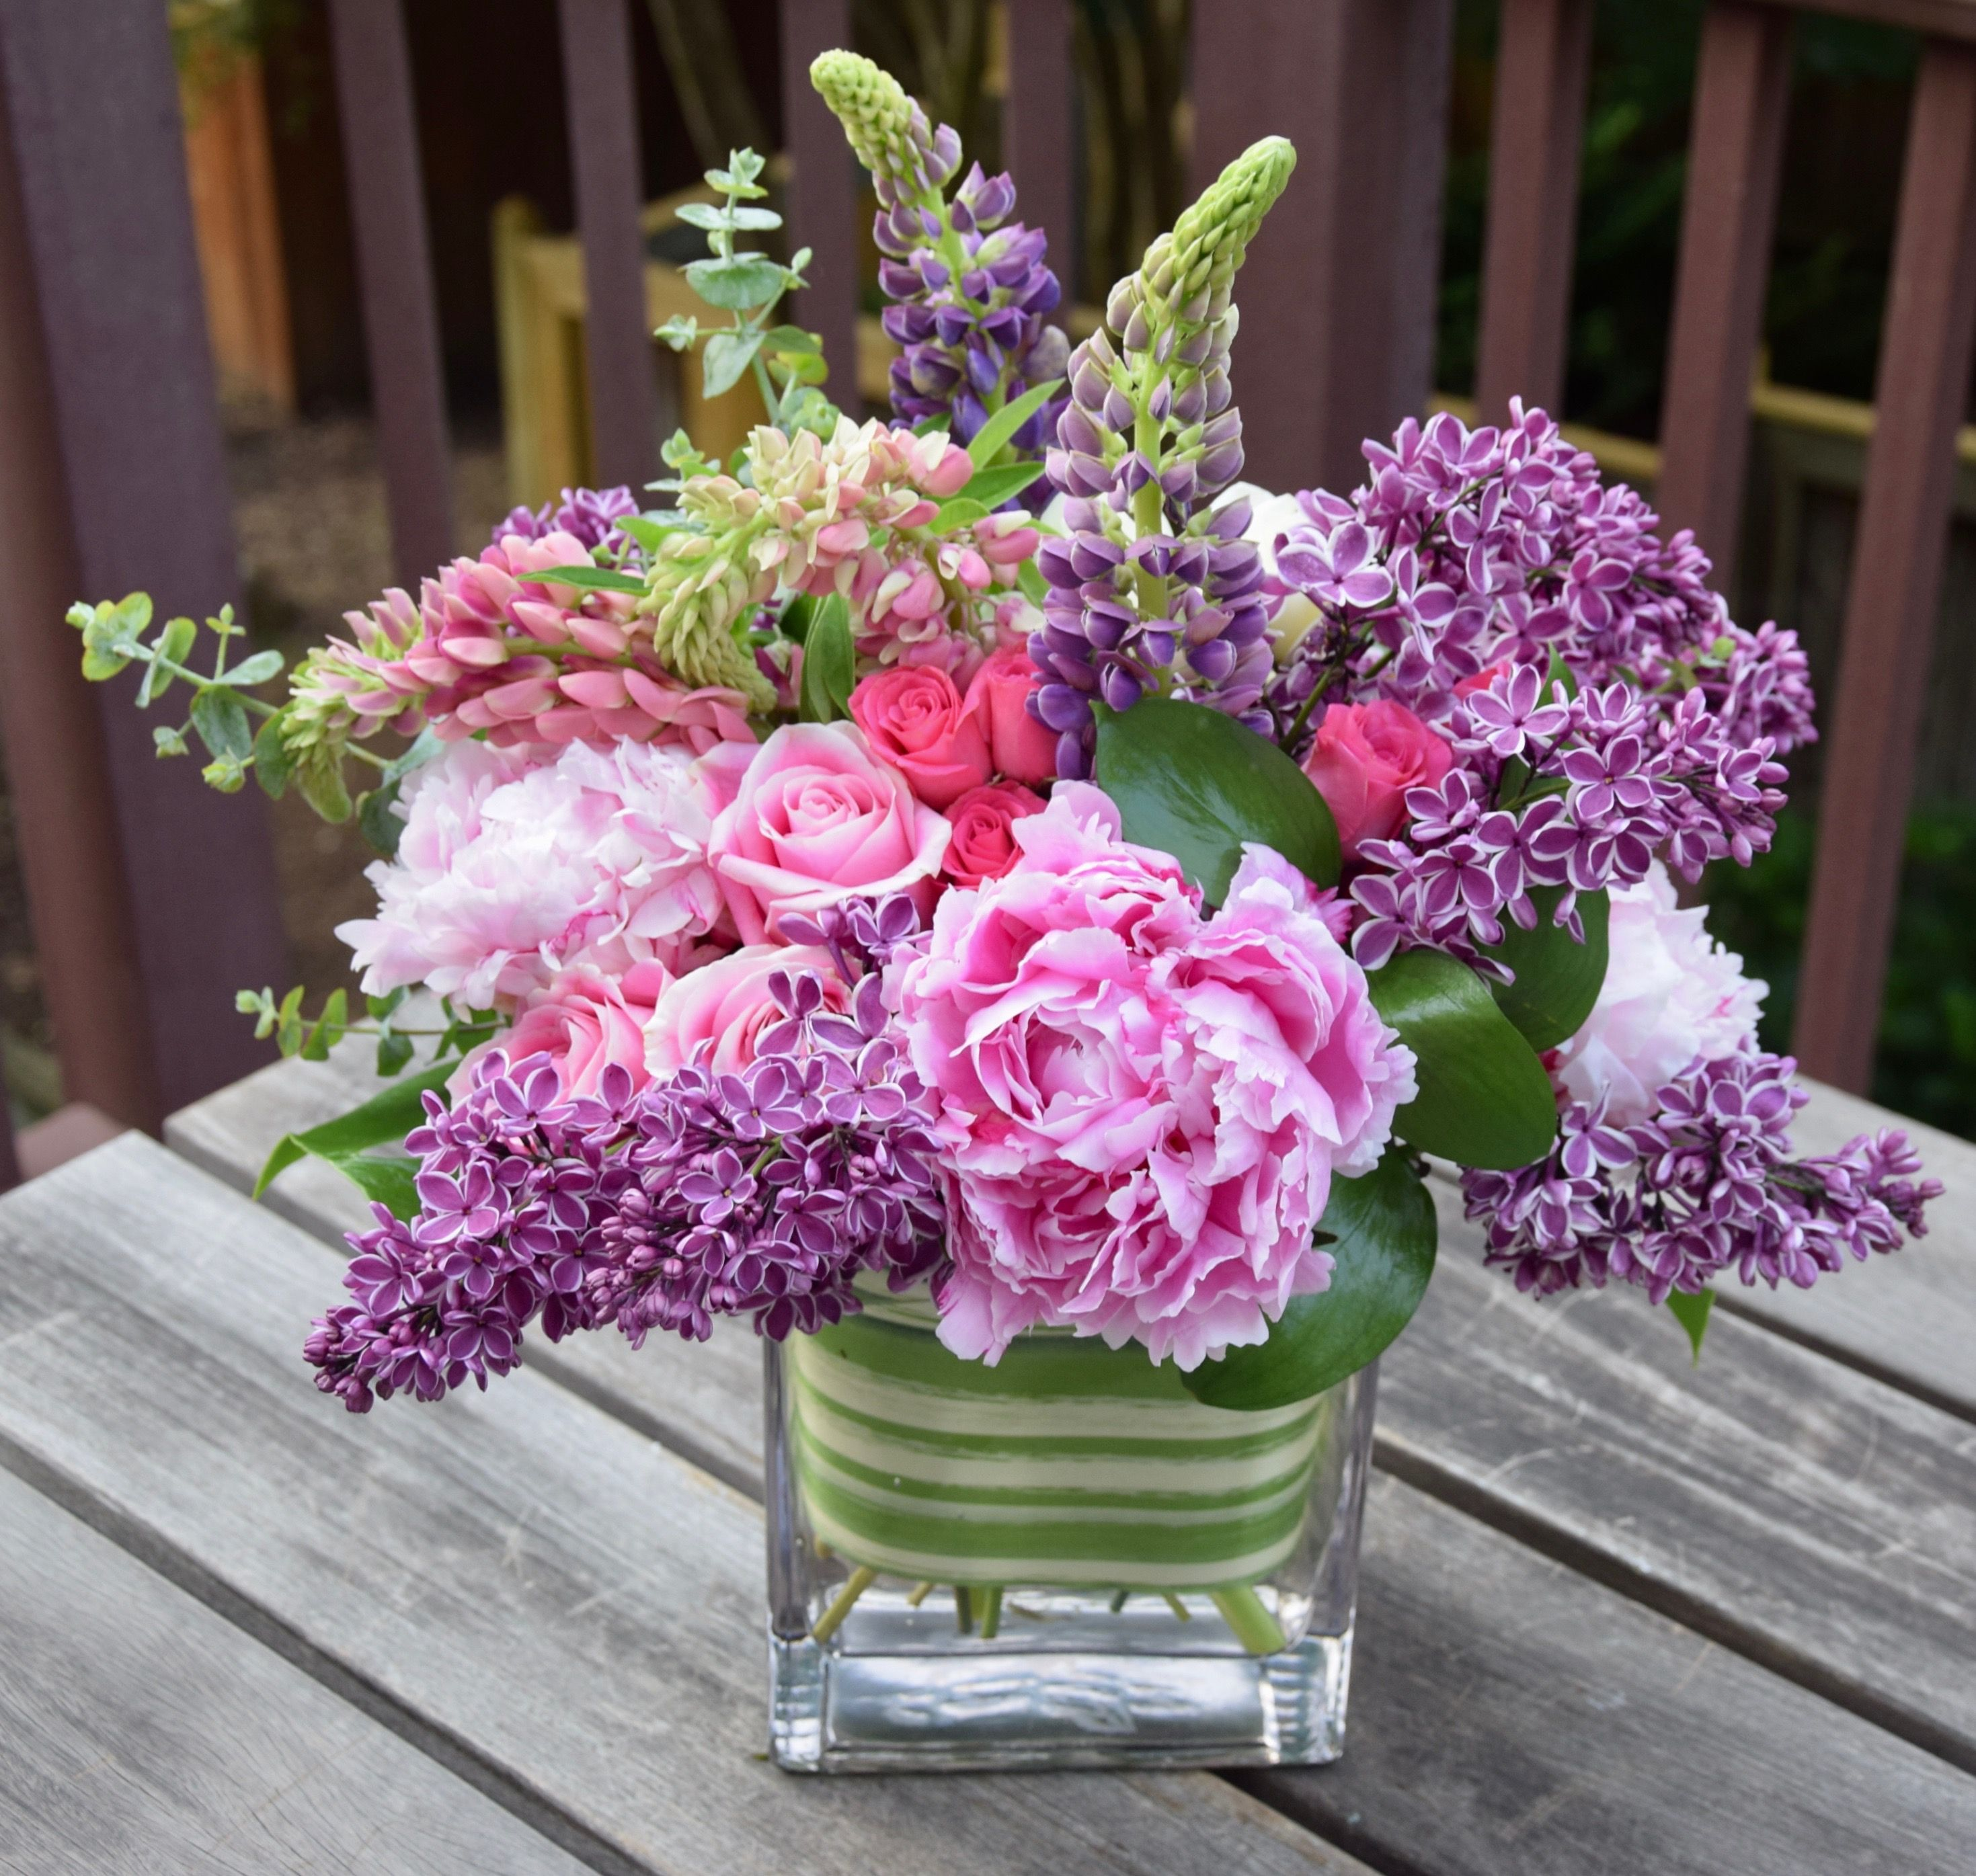 Flower Arrangement With Lilac Lupine Peonies And Roses Fresh Flowers Arrangements Contemporary Flower Arrangements Flower Arrangements